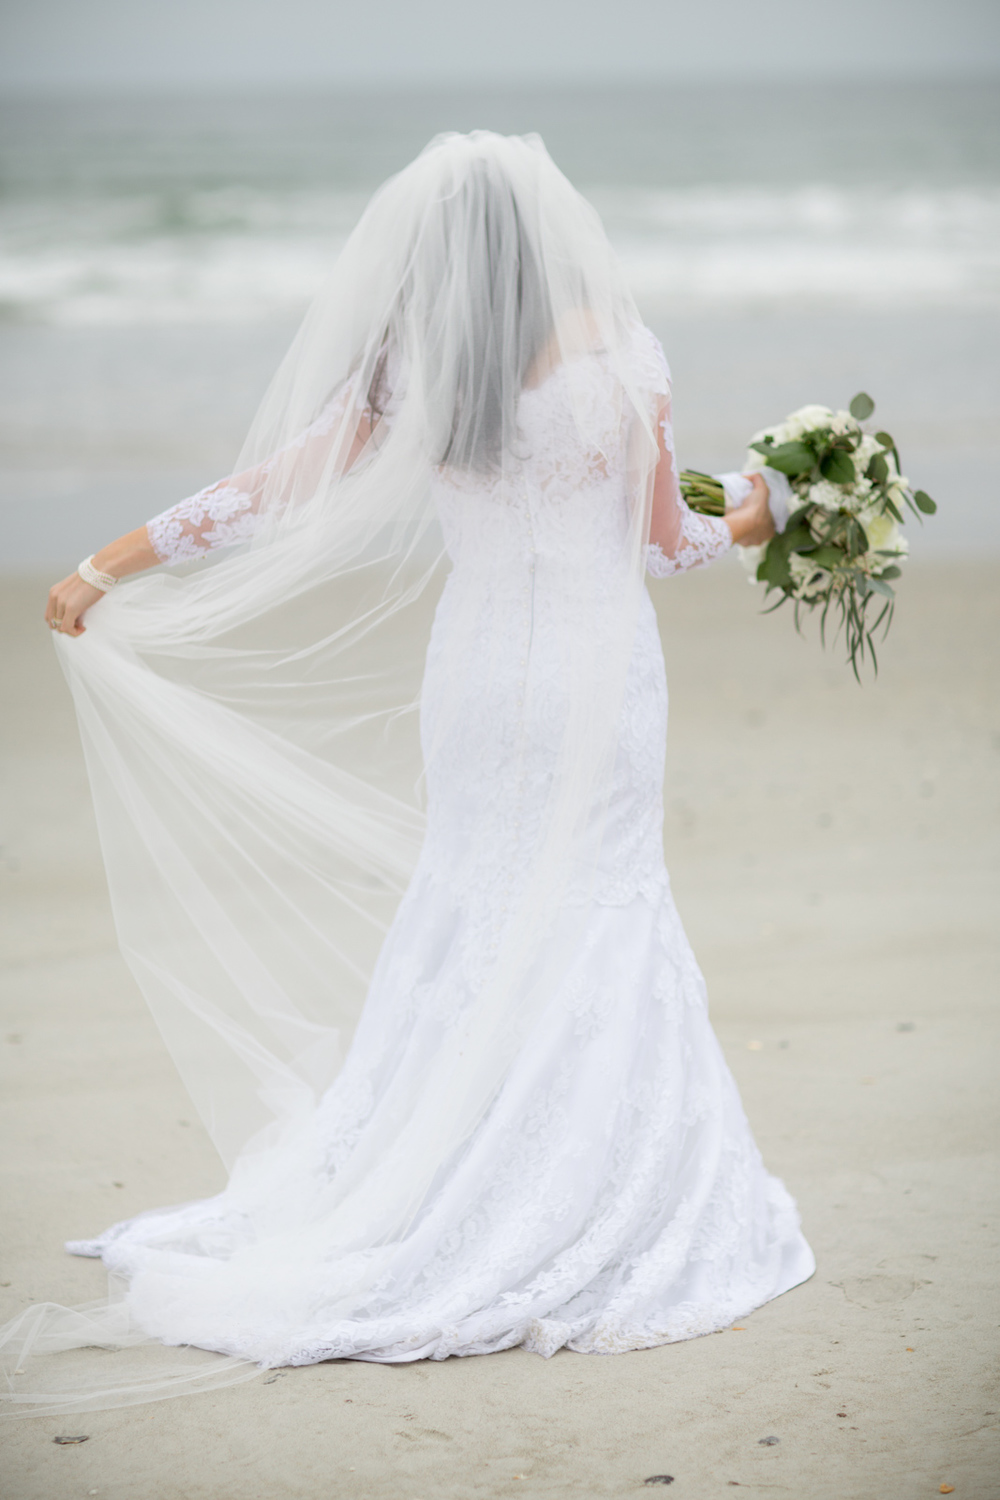 Figure eight island wedding-28.jpg